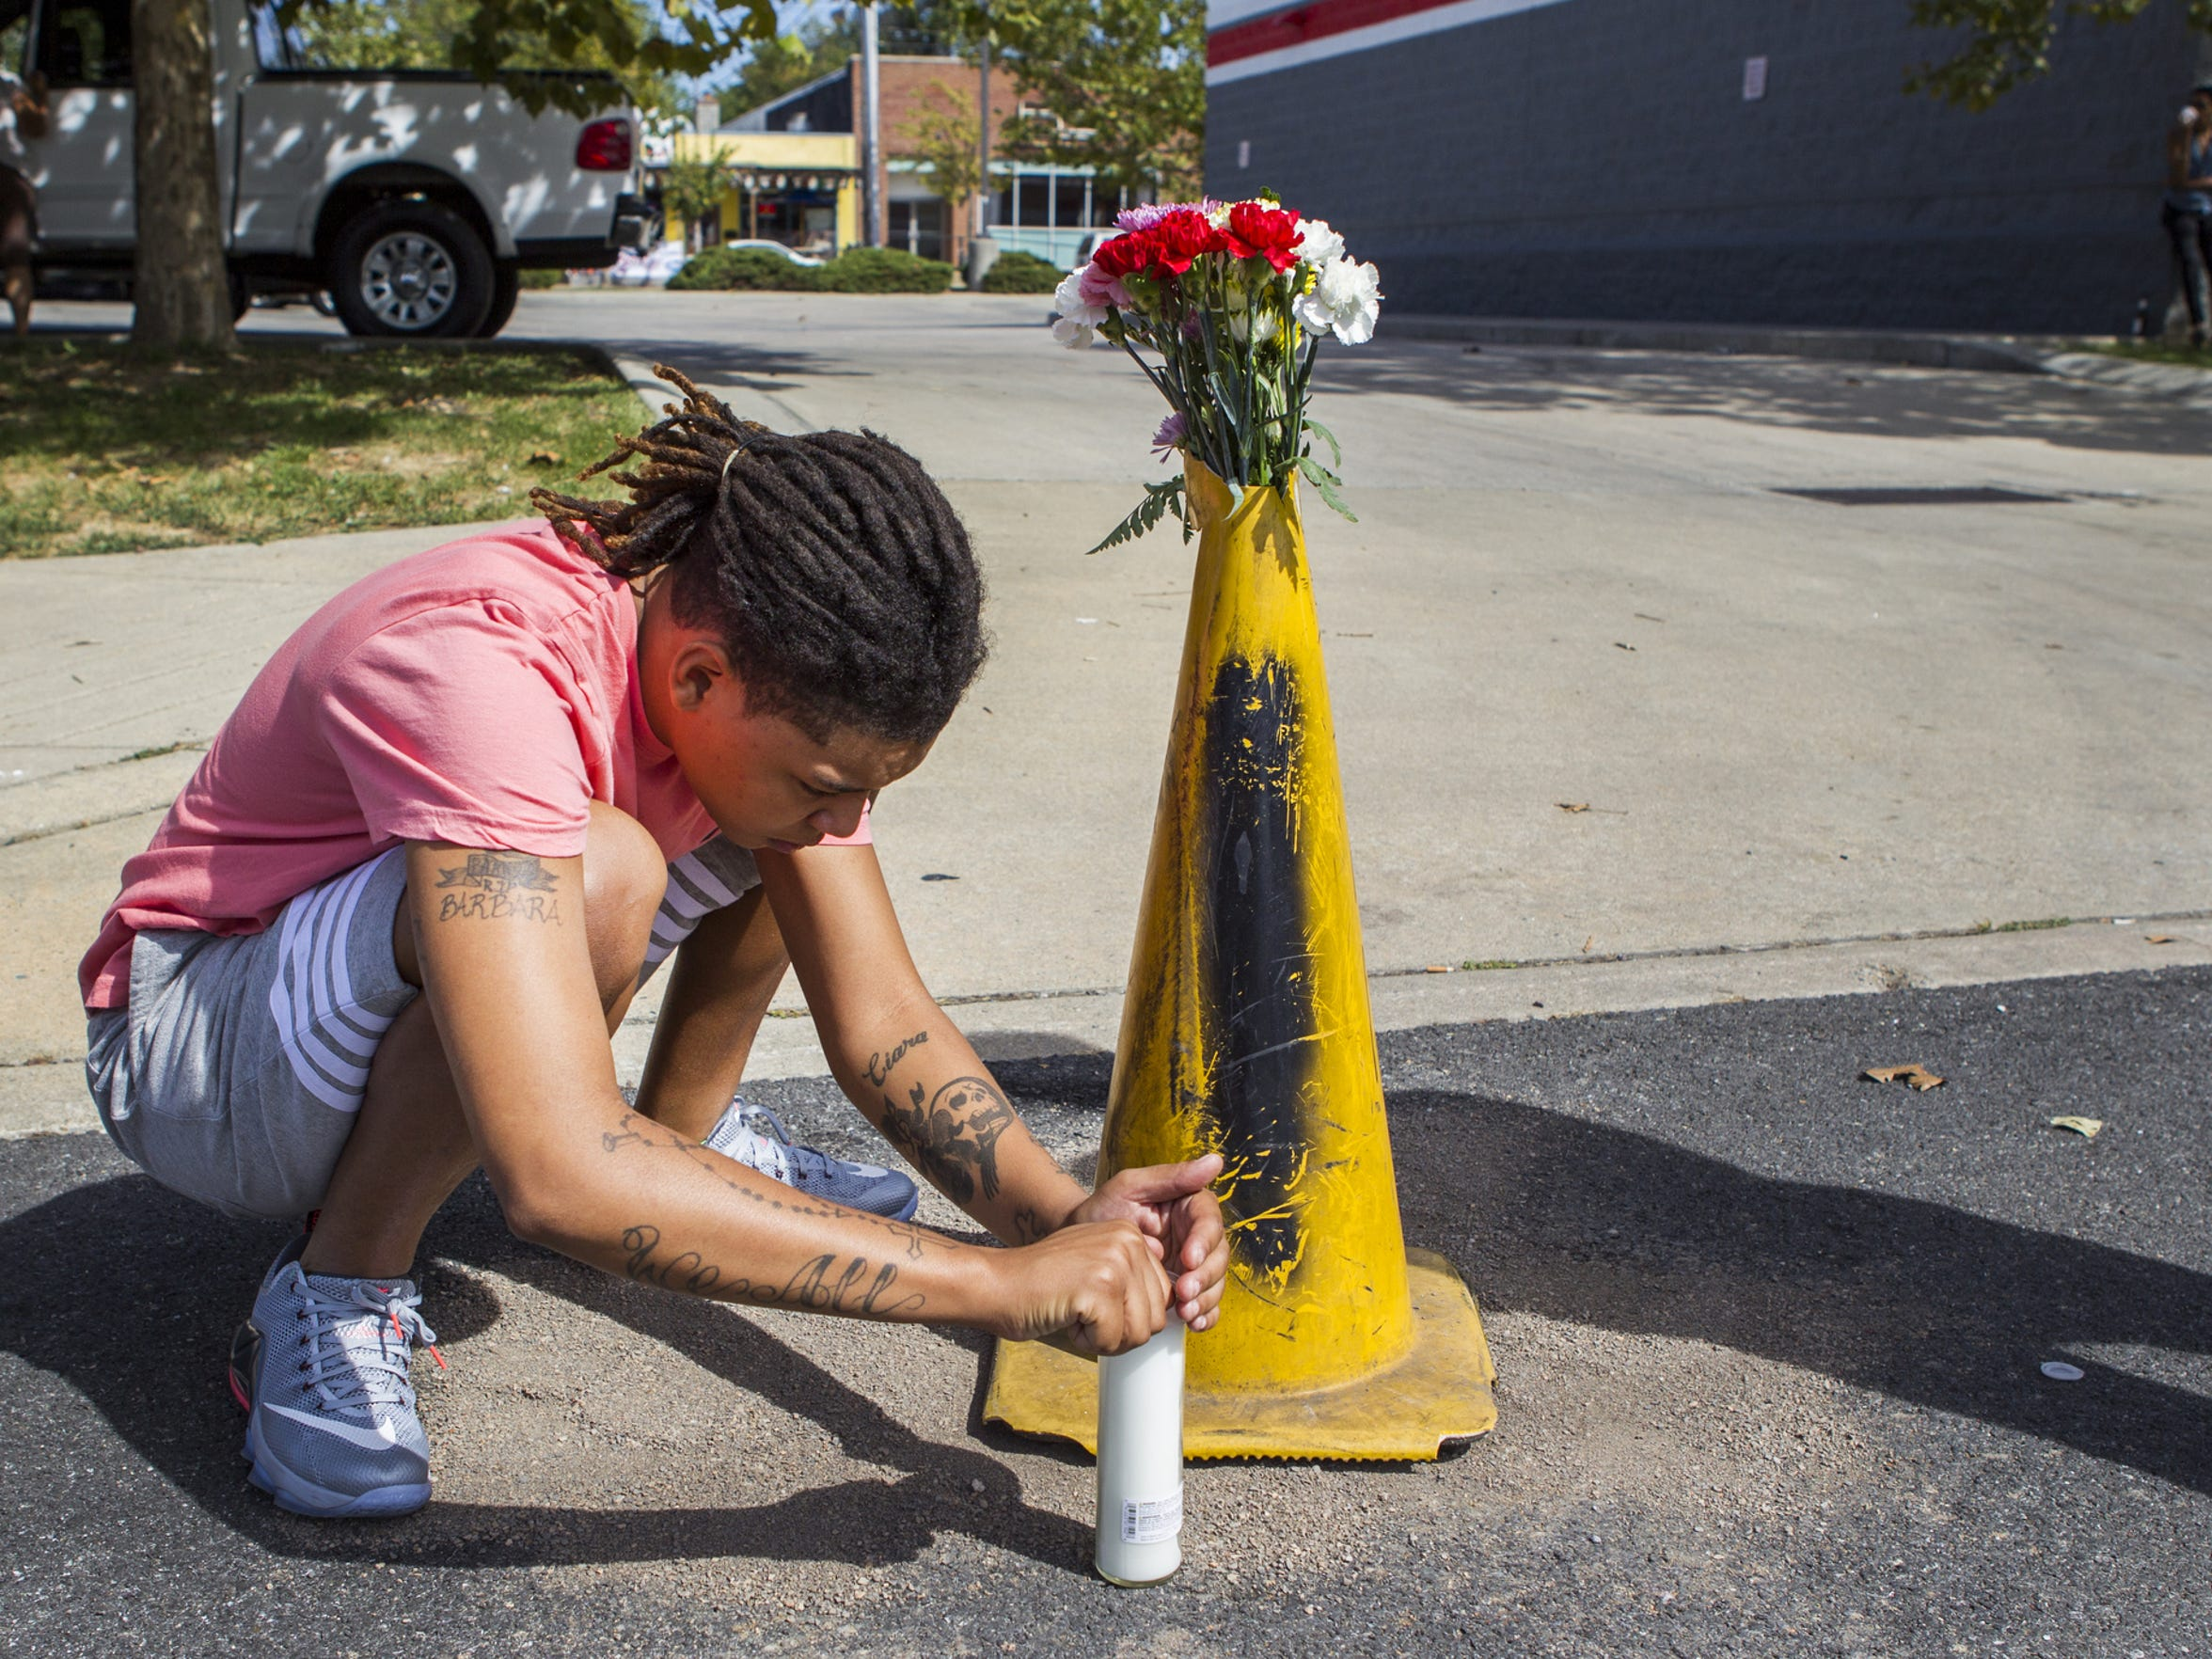 A woman who would not give her name, but described herself as a family member of Jeremy McDole, lights a candle at a makeshift memorial the morning after his death. McDole was shot and killed by members of the Wilmington Police Department near the corner of Tulip and Scott Streets in Wilmington on Sept. 23, 2015.